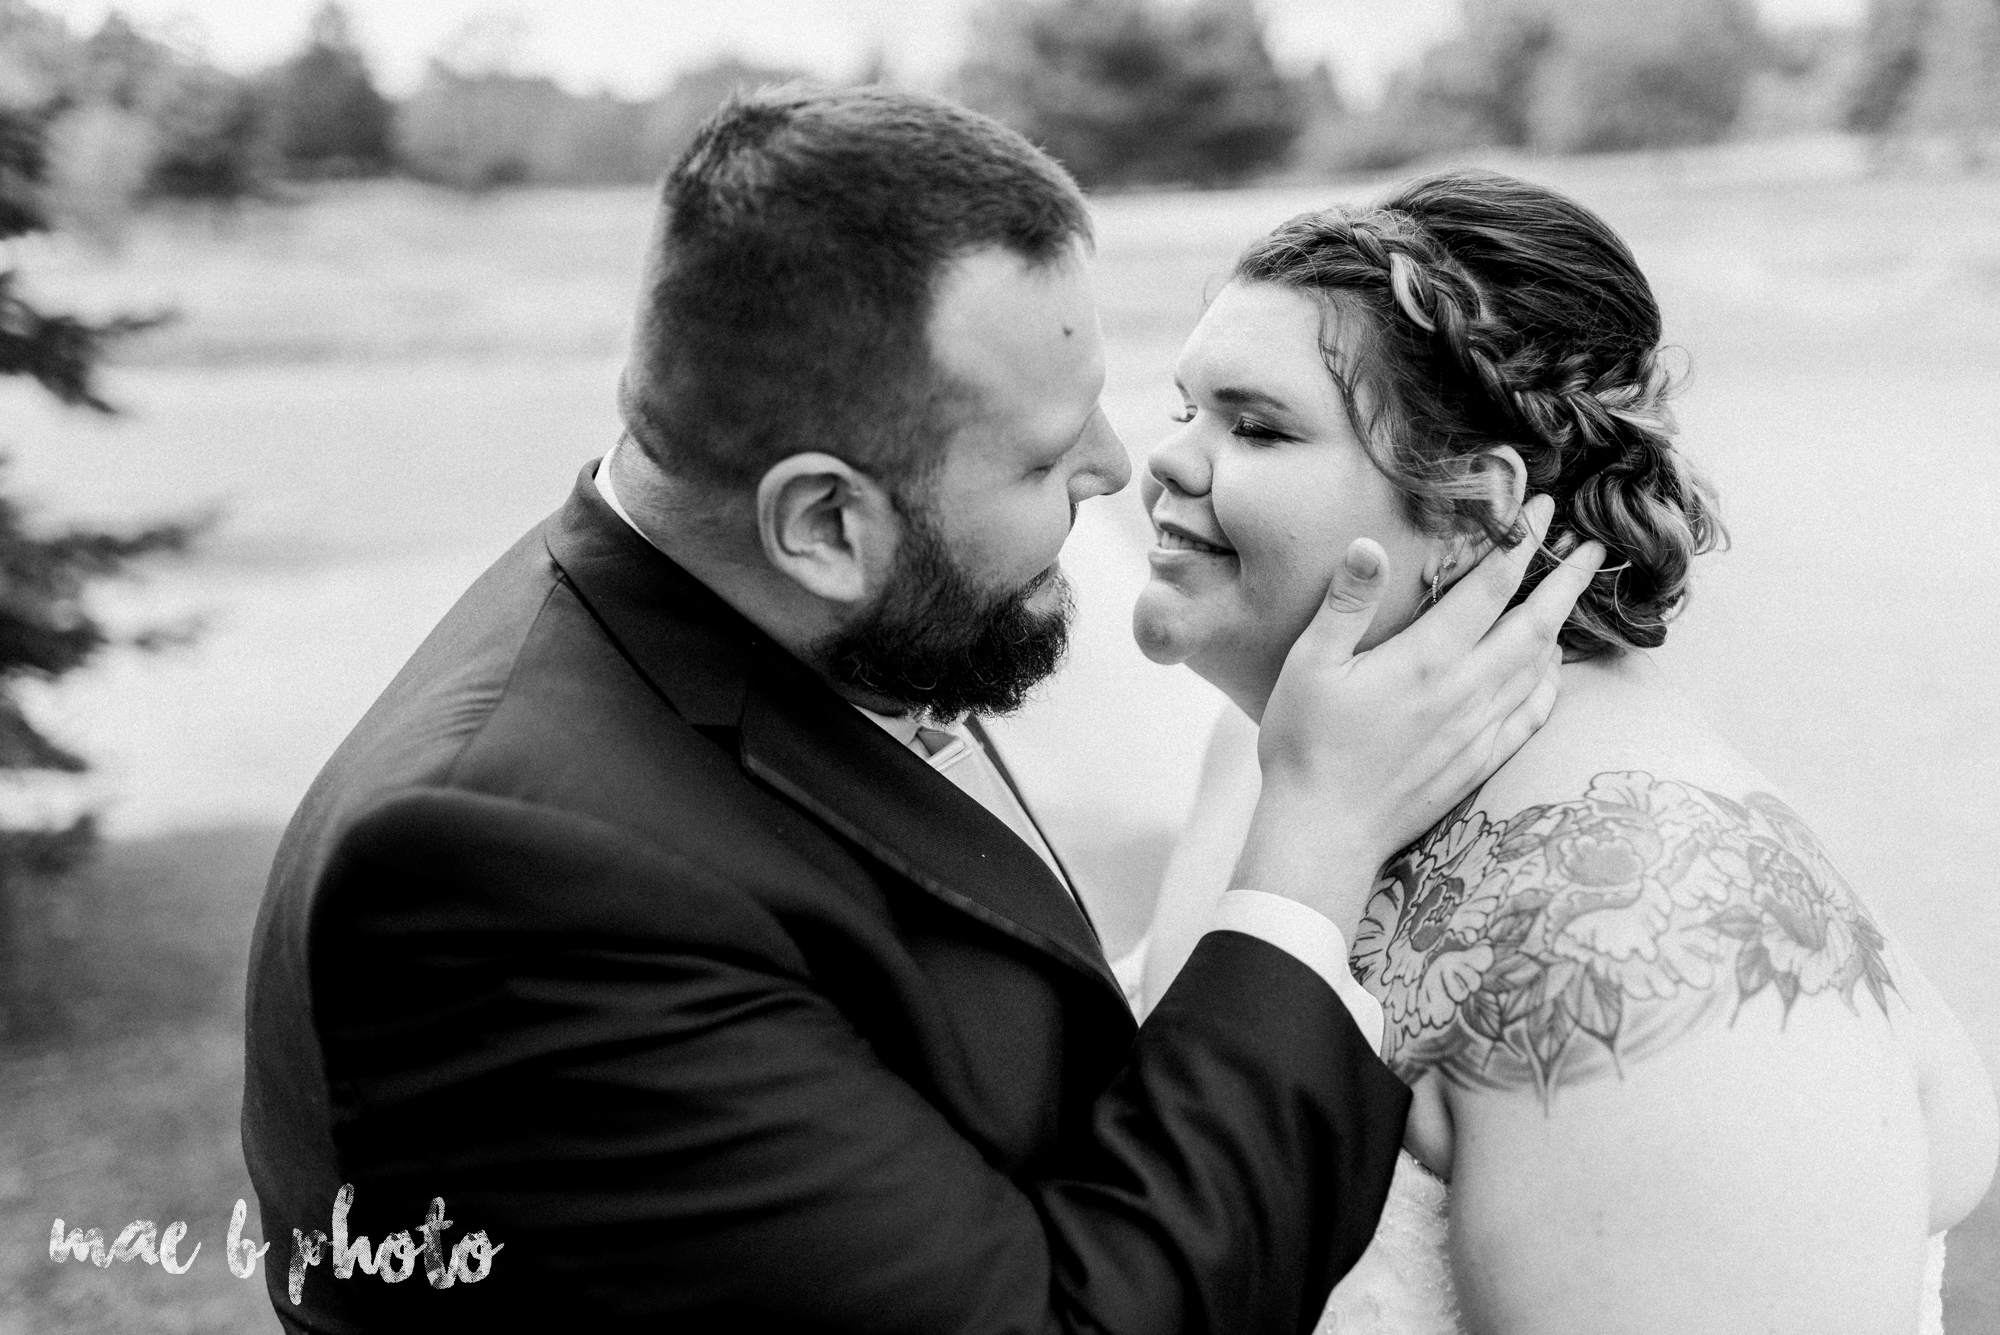 Kristina and ryan's personal vintage glam fall wedding at disalvo's station restaurant and the arnold palmer latrobe country club in latrobe, pa photographed by youngstown wedding photographer mae b photo-33.jpg